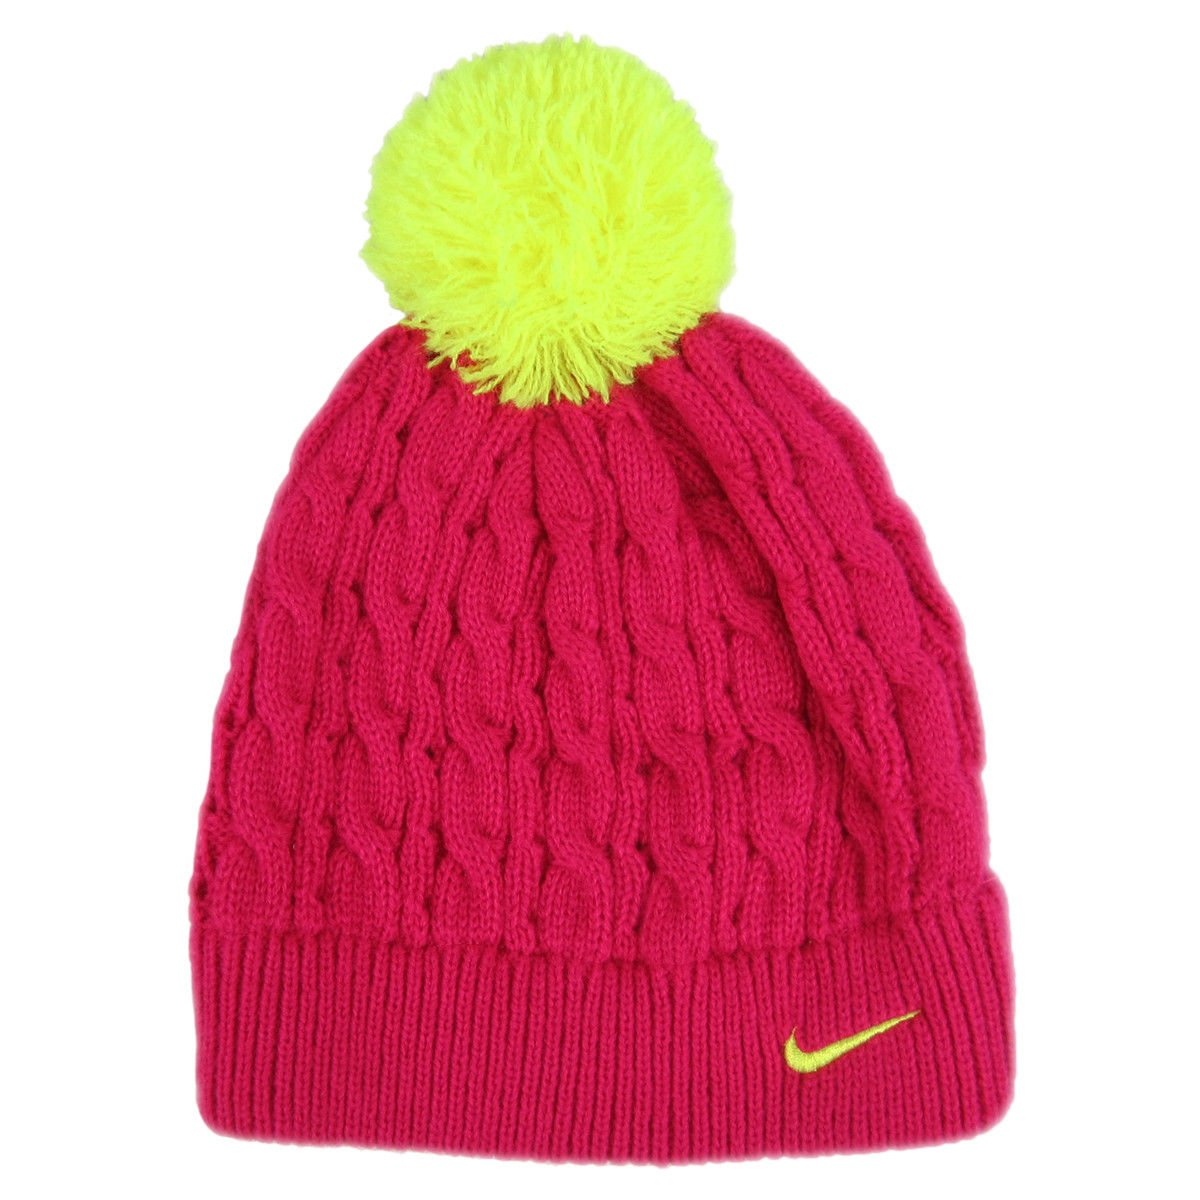 Details about NEW WITHOUT TAGS Nike Girl s Cable Knit Beanie 4 6x Pink  Yellow Swoosh DEFECT ec855a18818